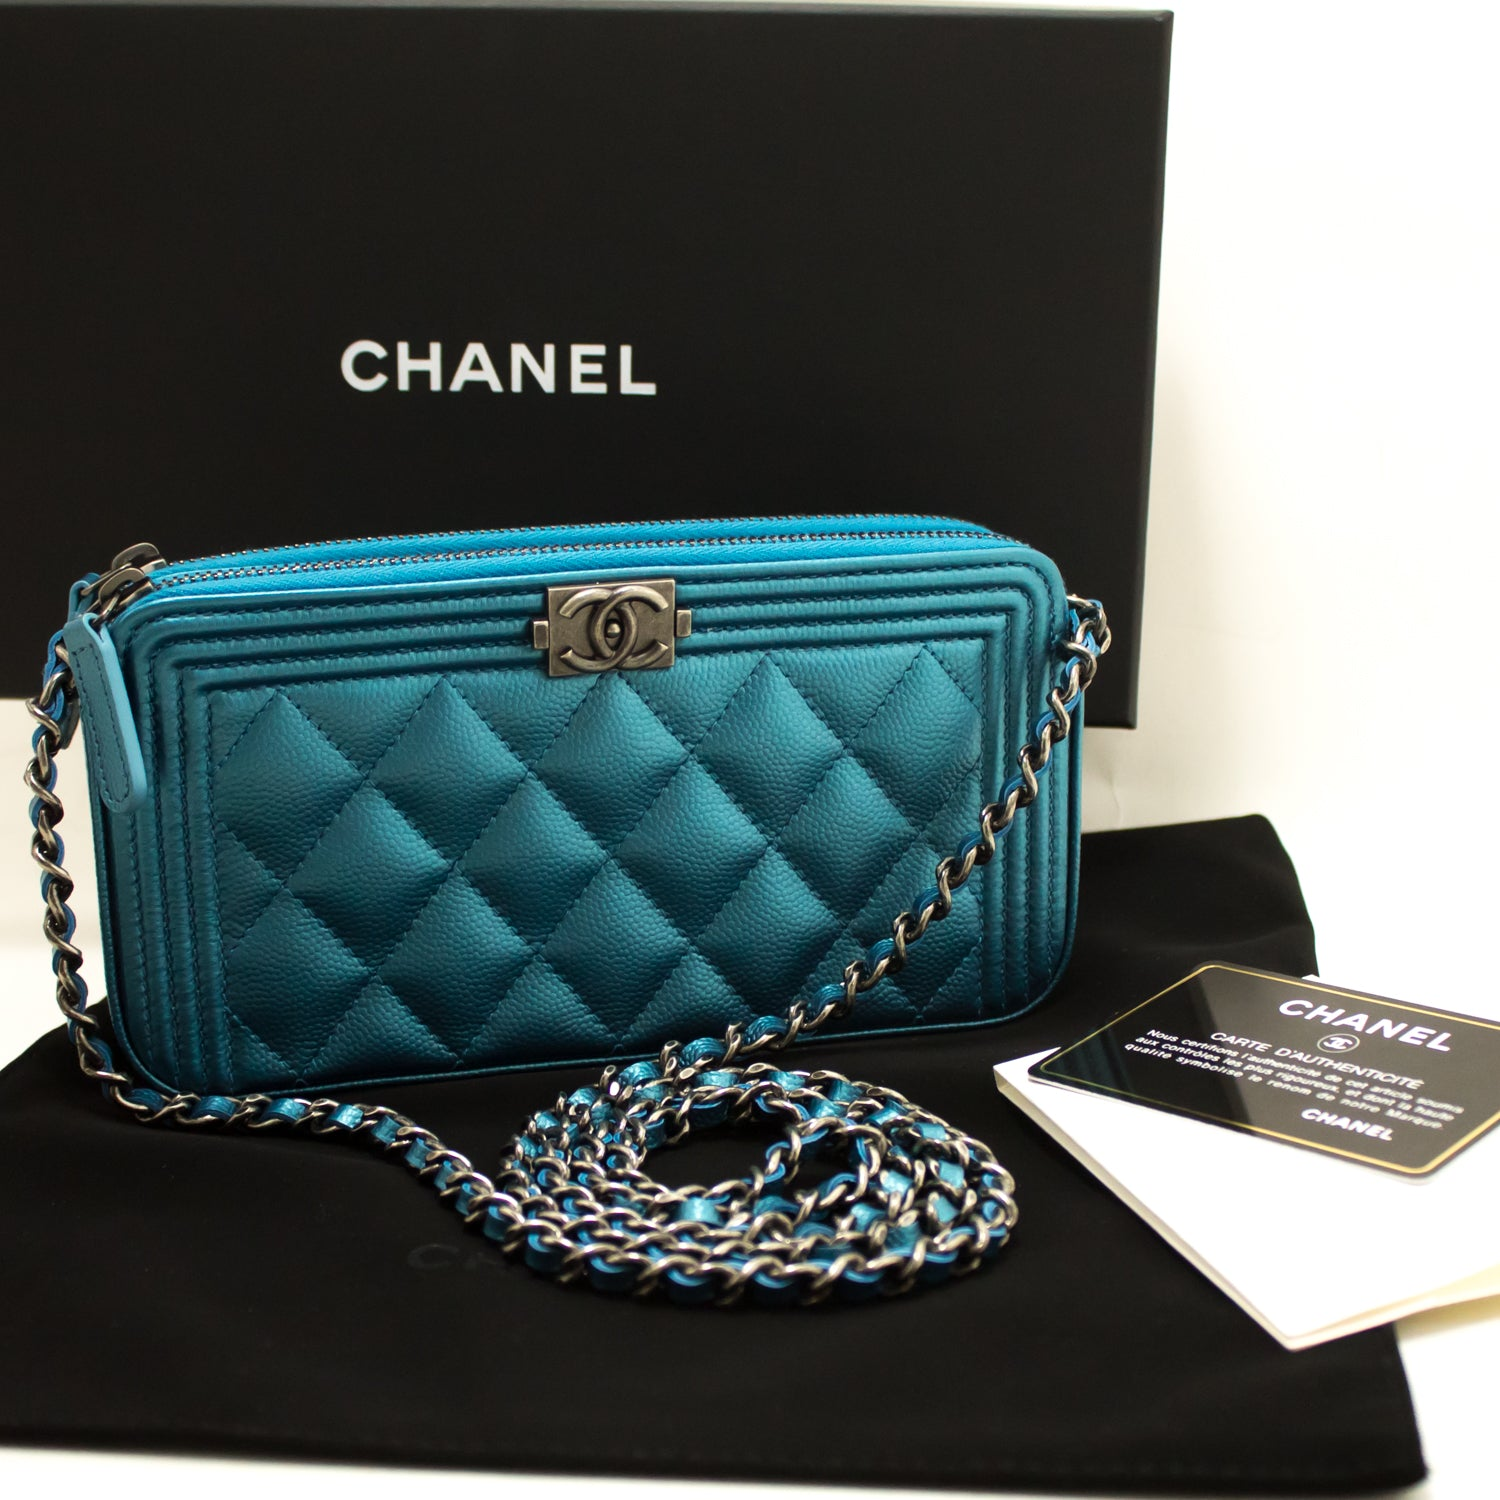 ffa0d9135a57 ... CHANEL Boy Metallic Blue Caviar Wallet On Chain WOC Clutch Bag L01- Chanel-hannari ...